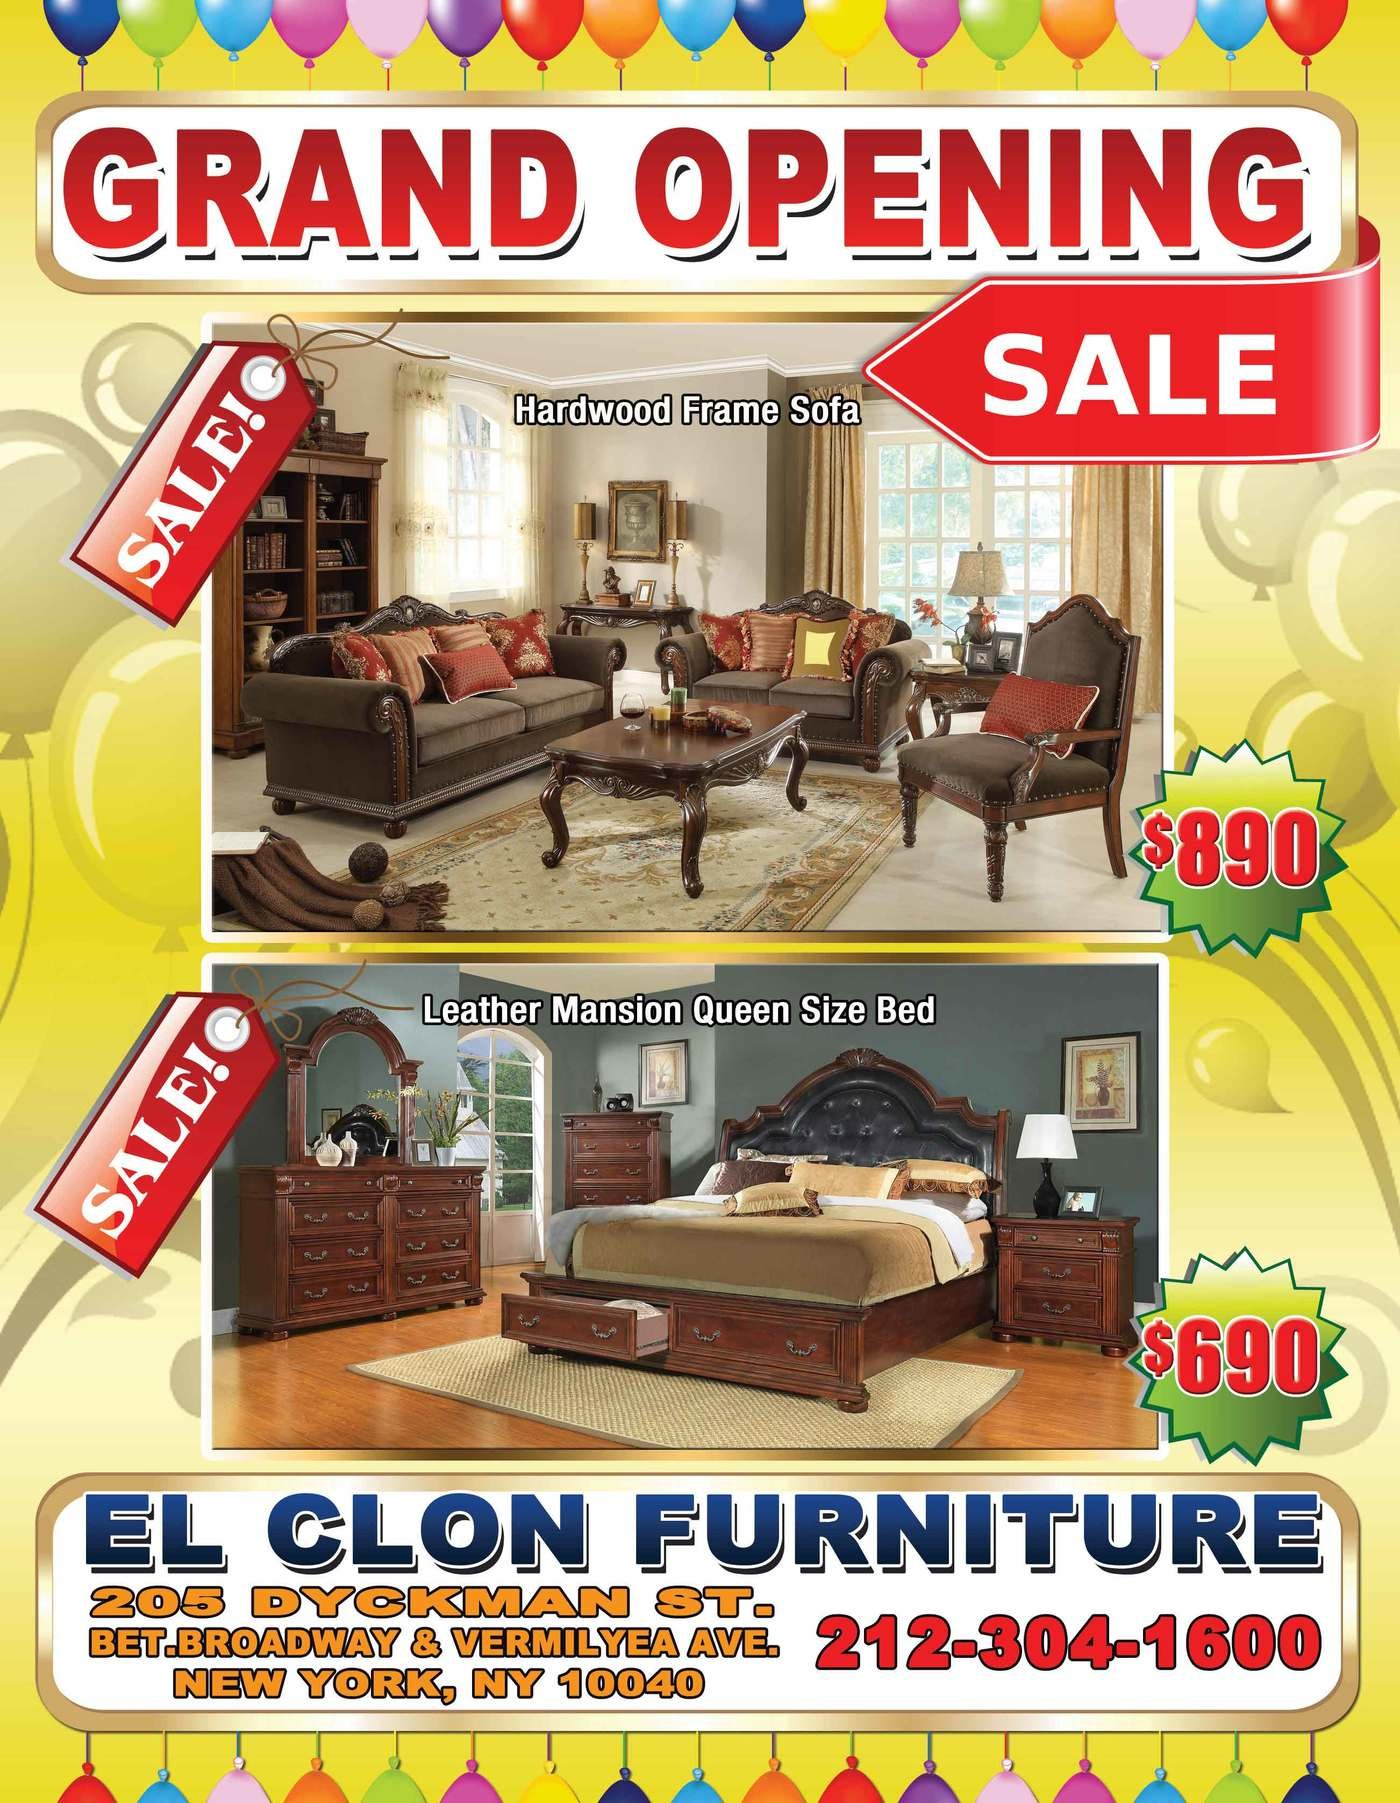 La Monarca Furniture 4th Of July By Oswaldo Troya At Coroflot Com